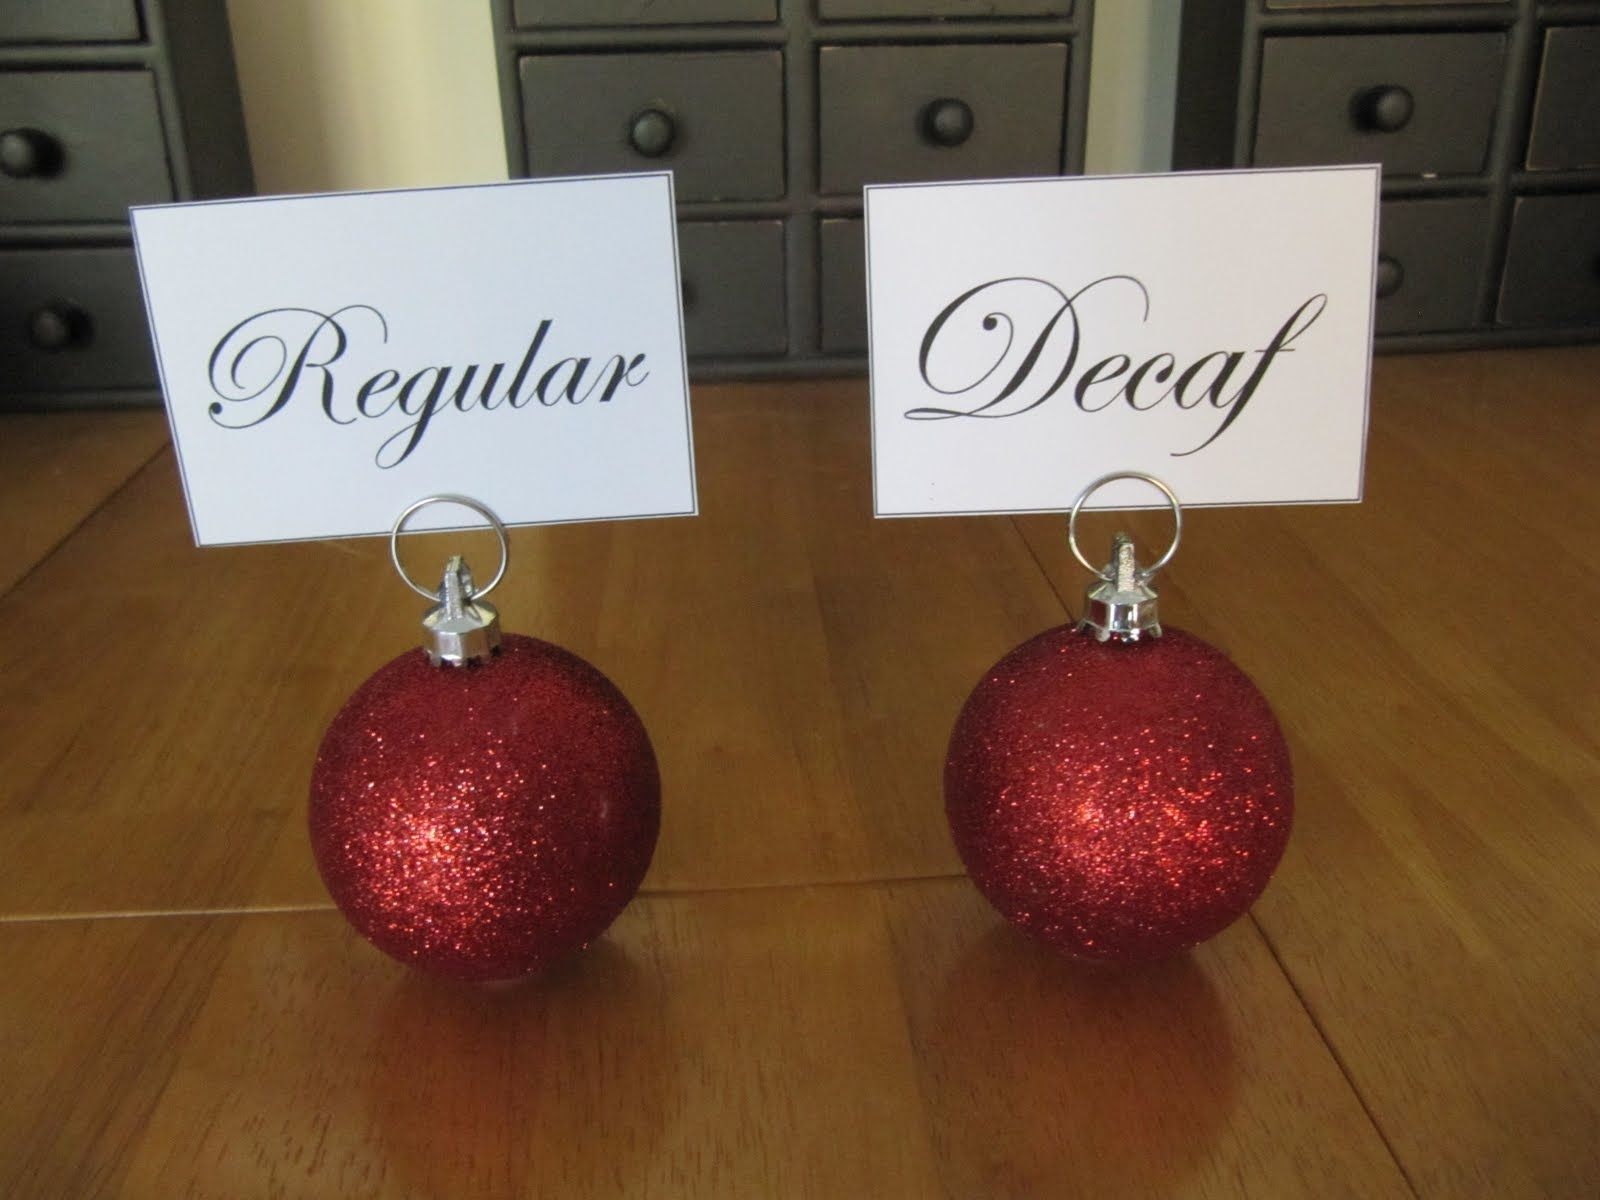 Ornament Placecard Holder Glue Plastic Ring On The Bottom Of To Keep It From Rolling And Attach Top Hold Cards